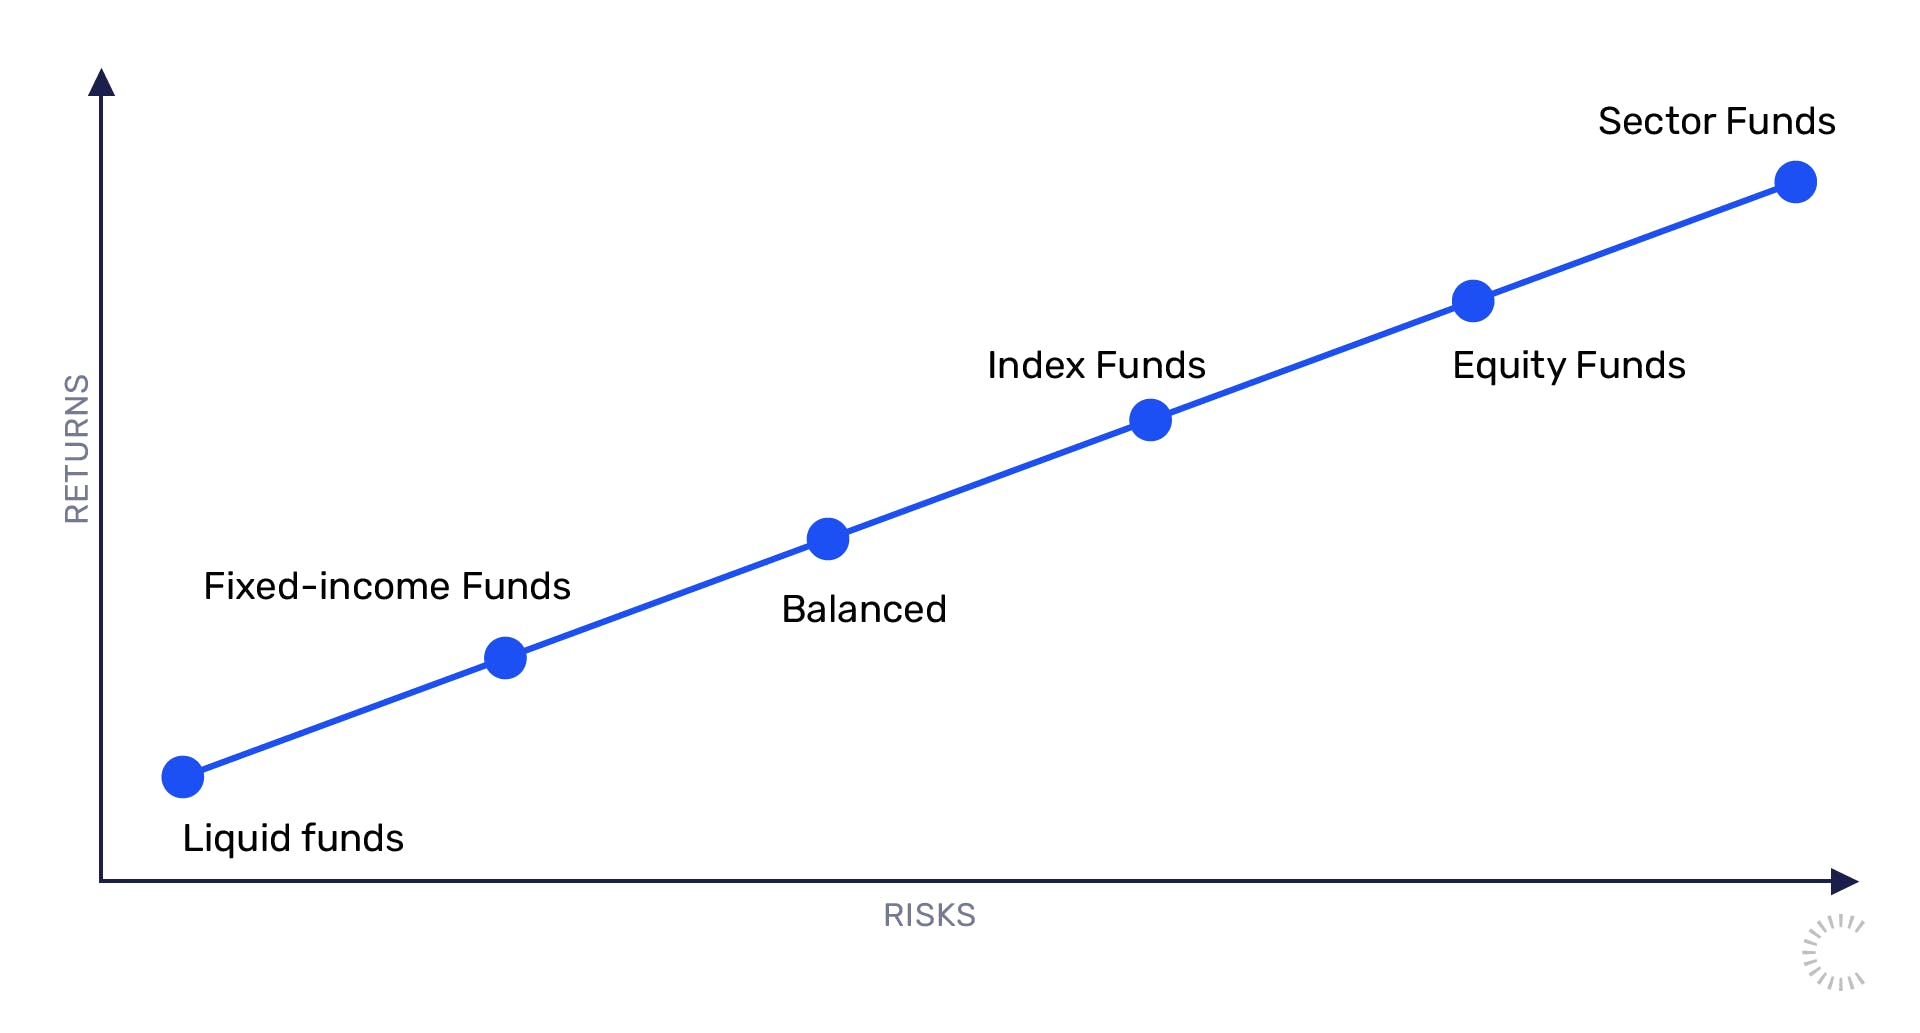 Types of mutual funds and associated risks